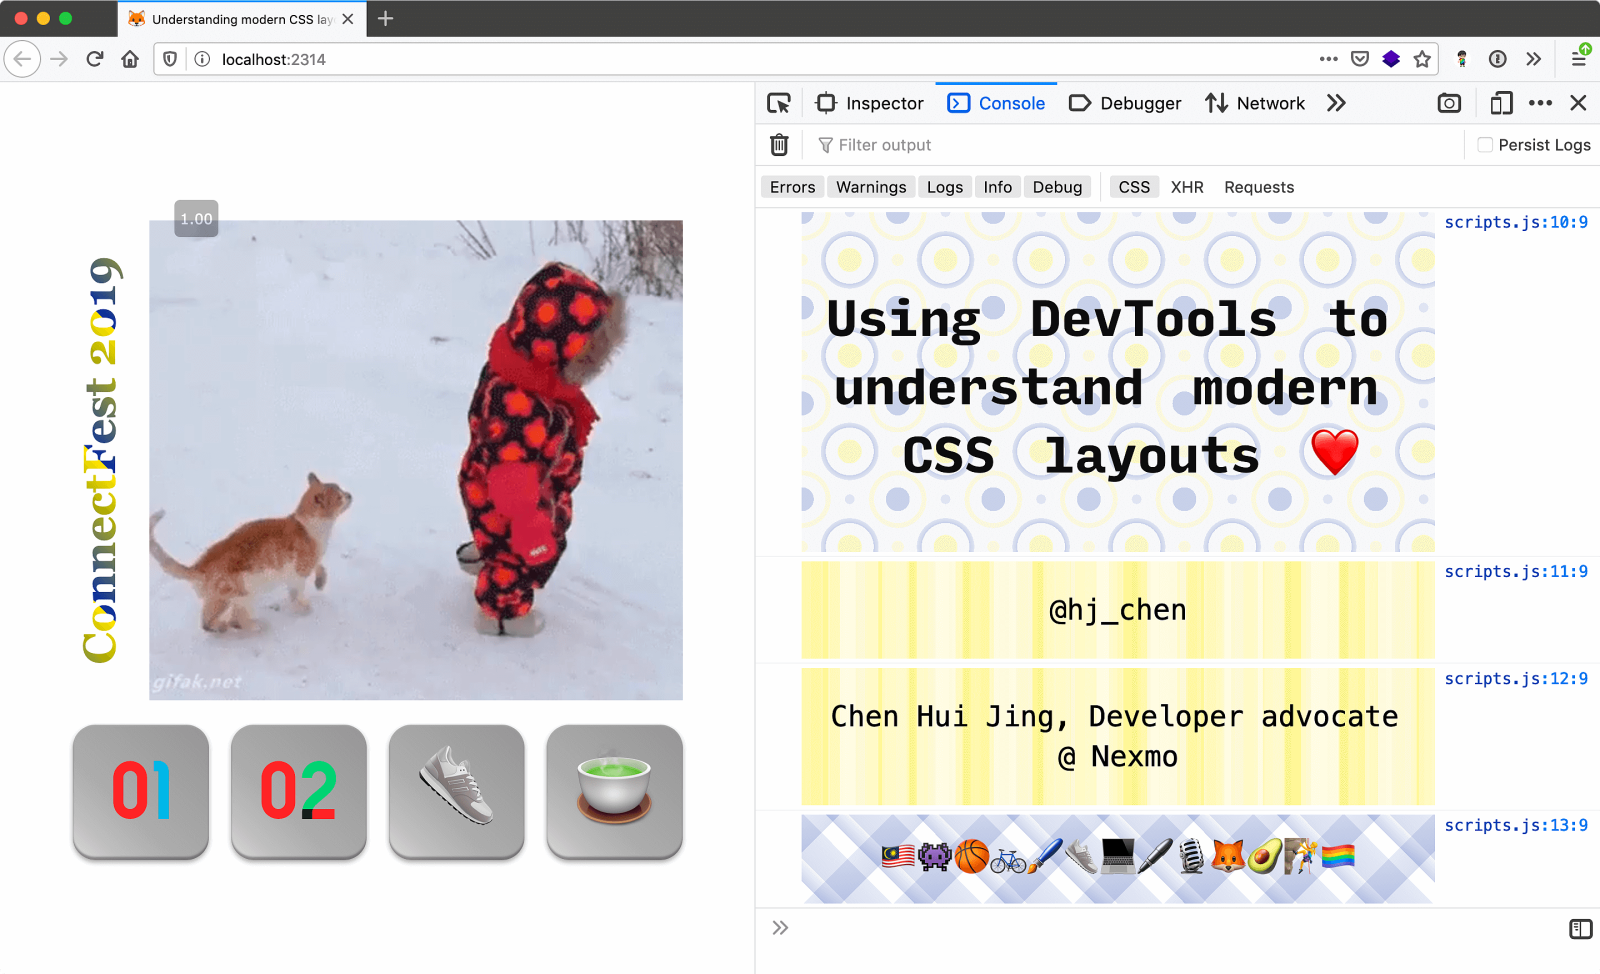 Using DevTools to understand modern CSS layouts